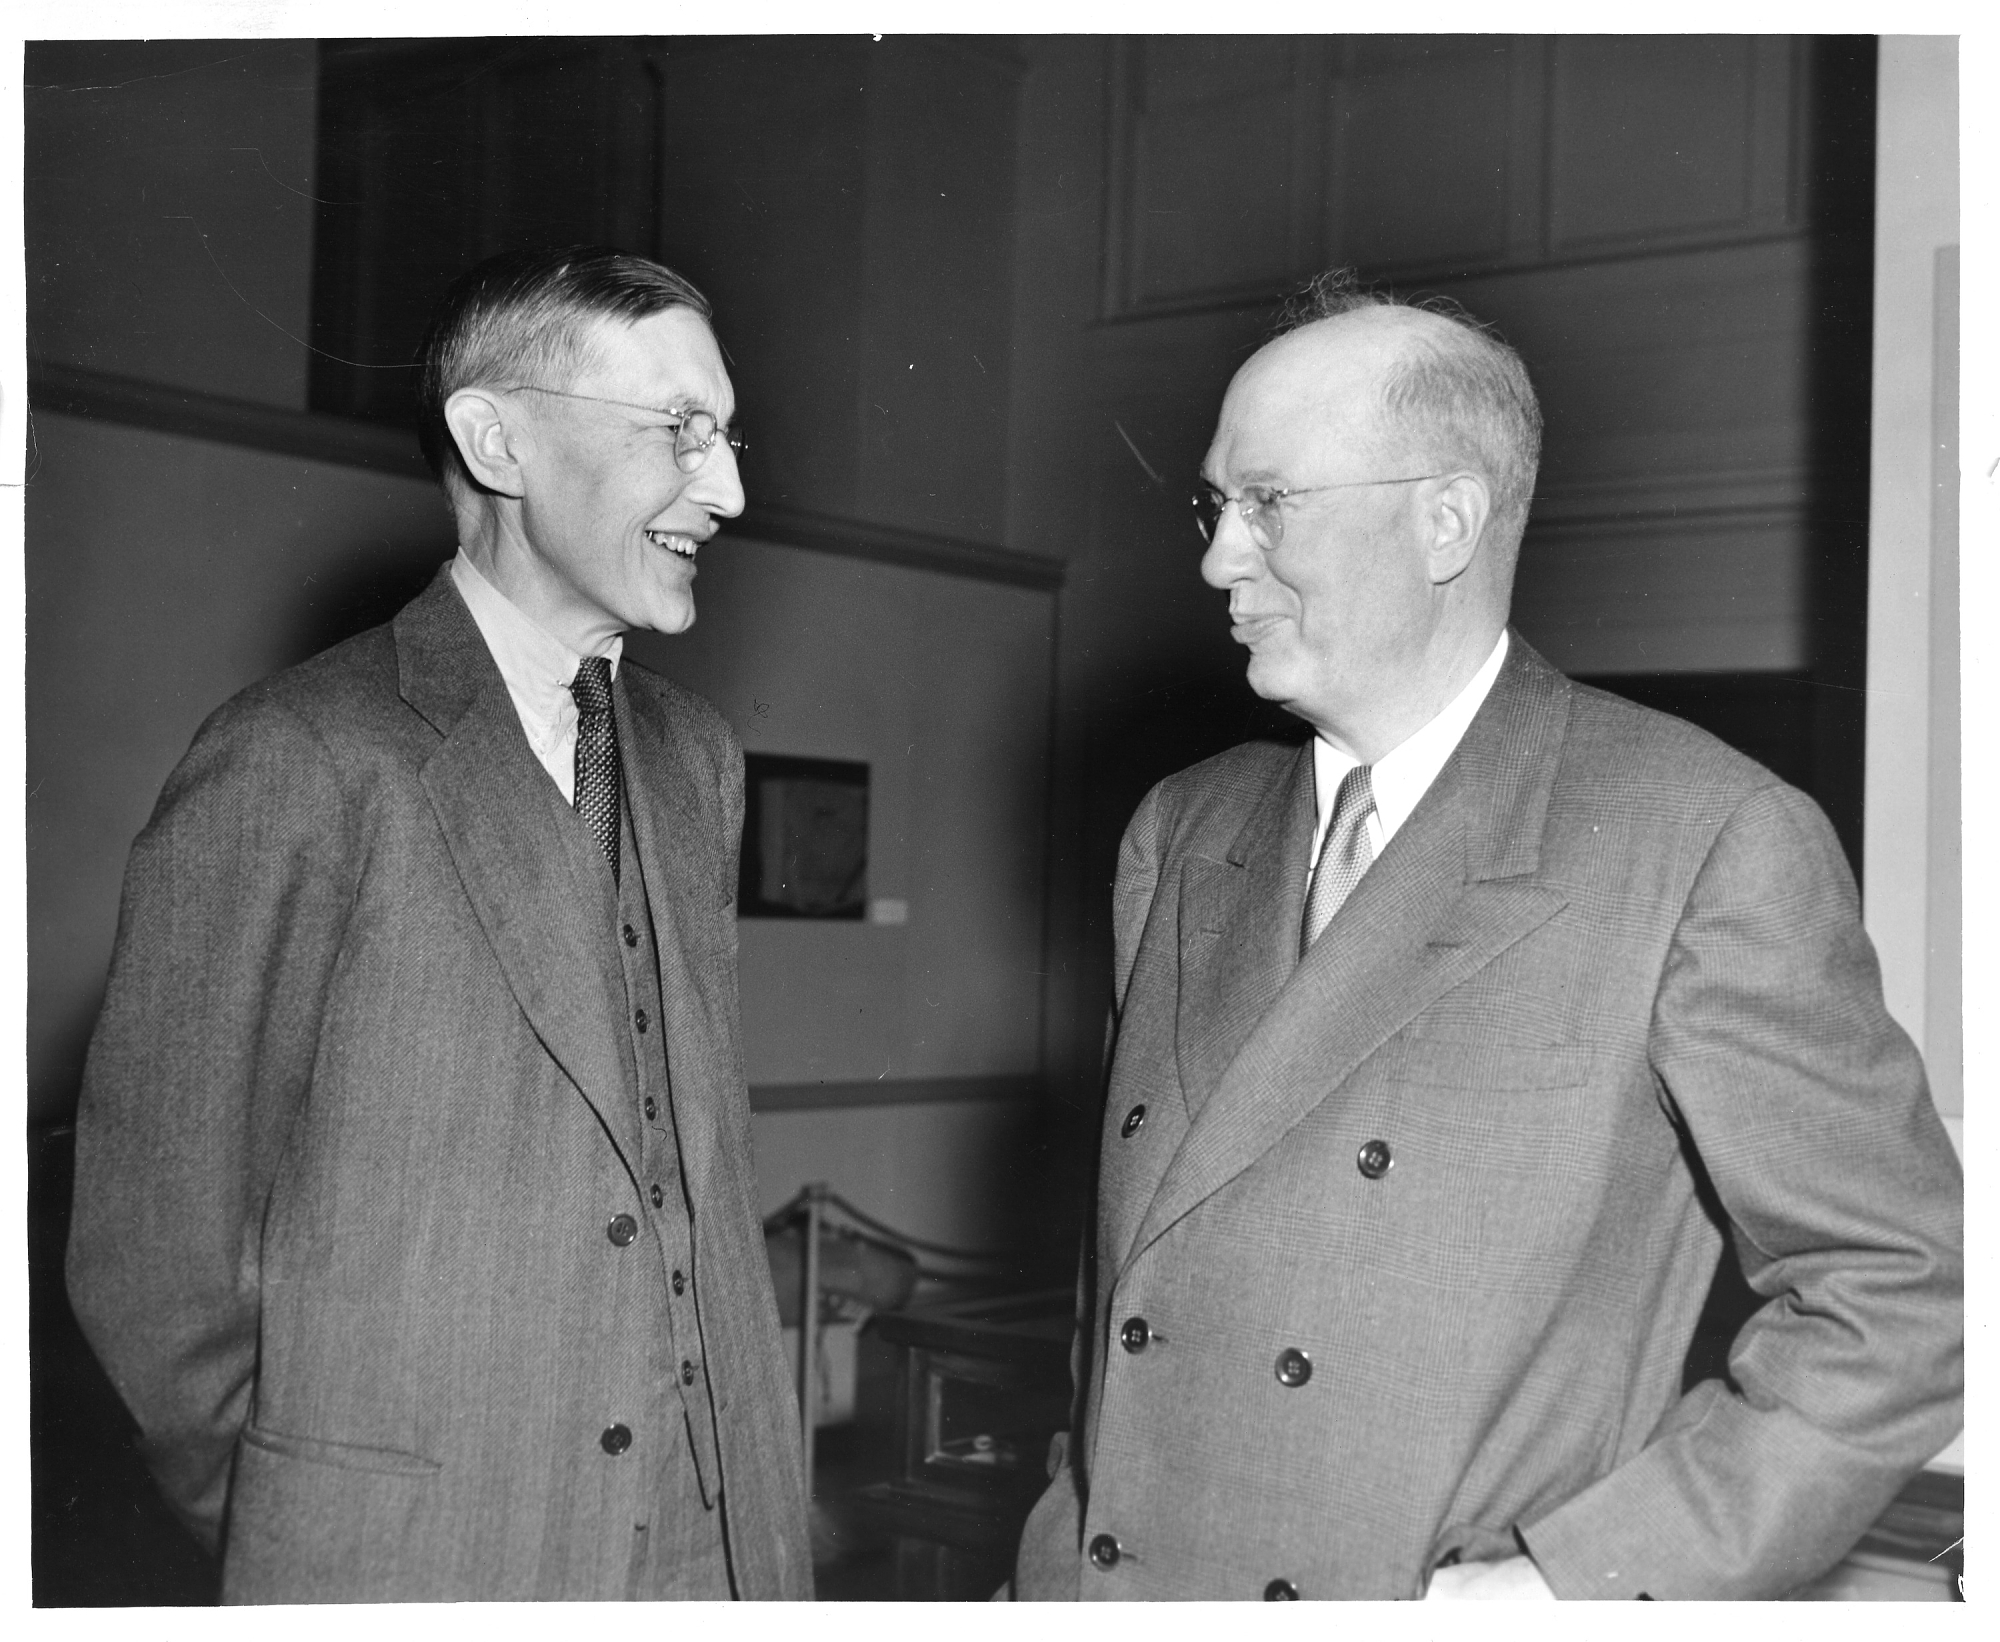 Herbert Spencer Gasser and Oliver Ellsworth Buckley